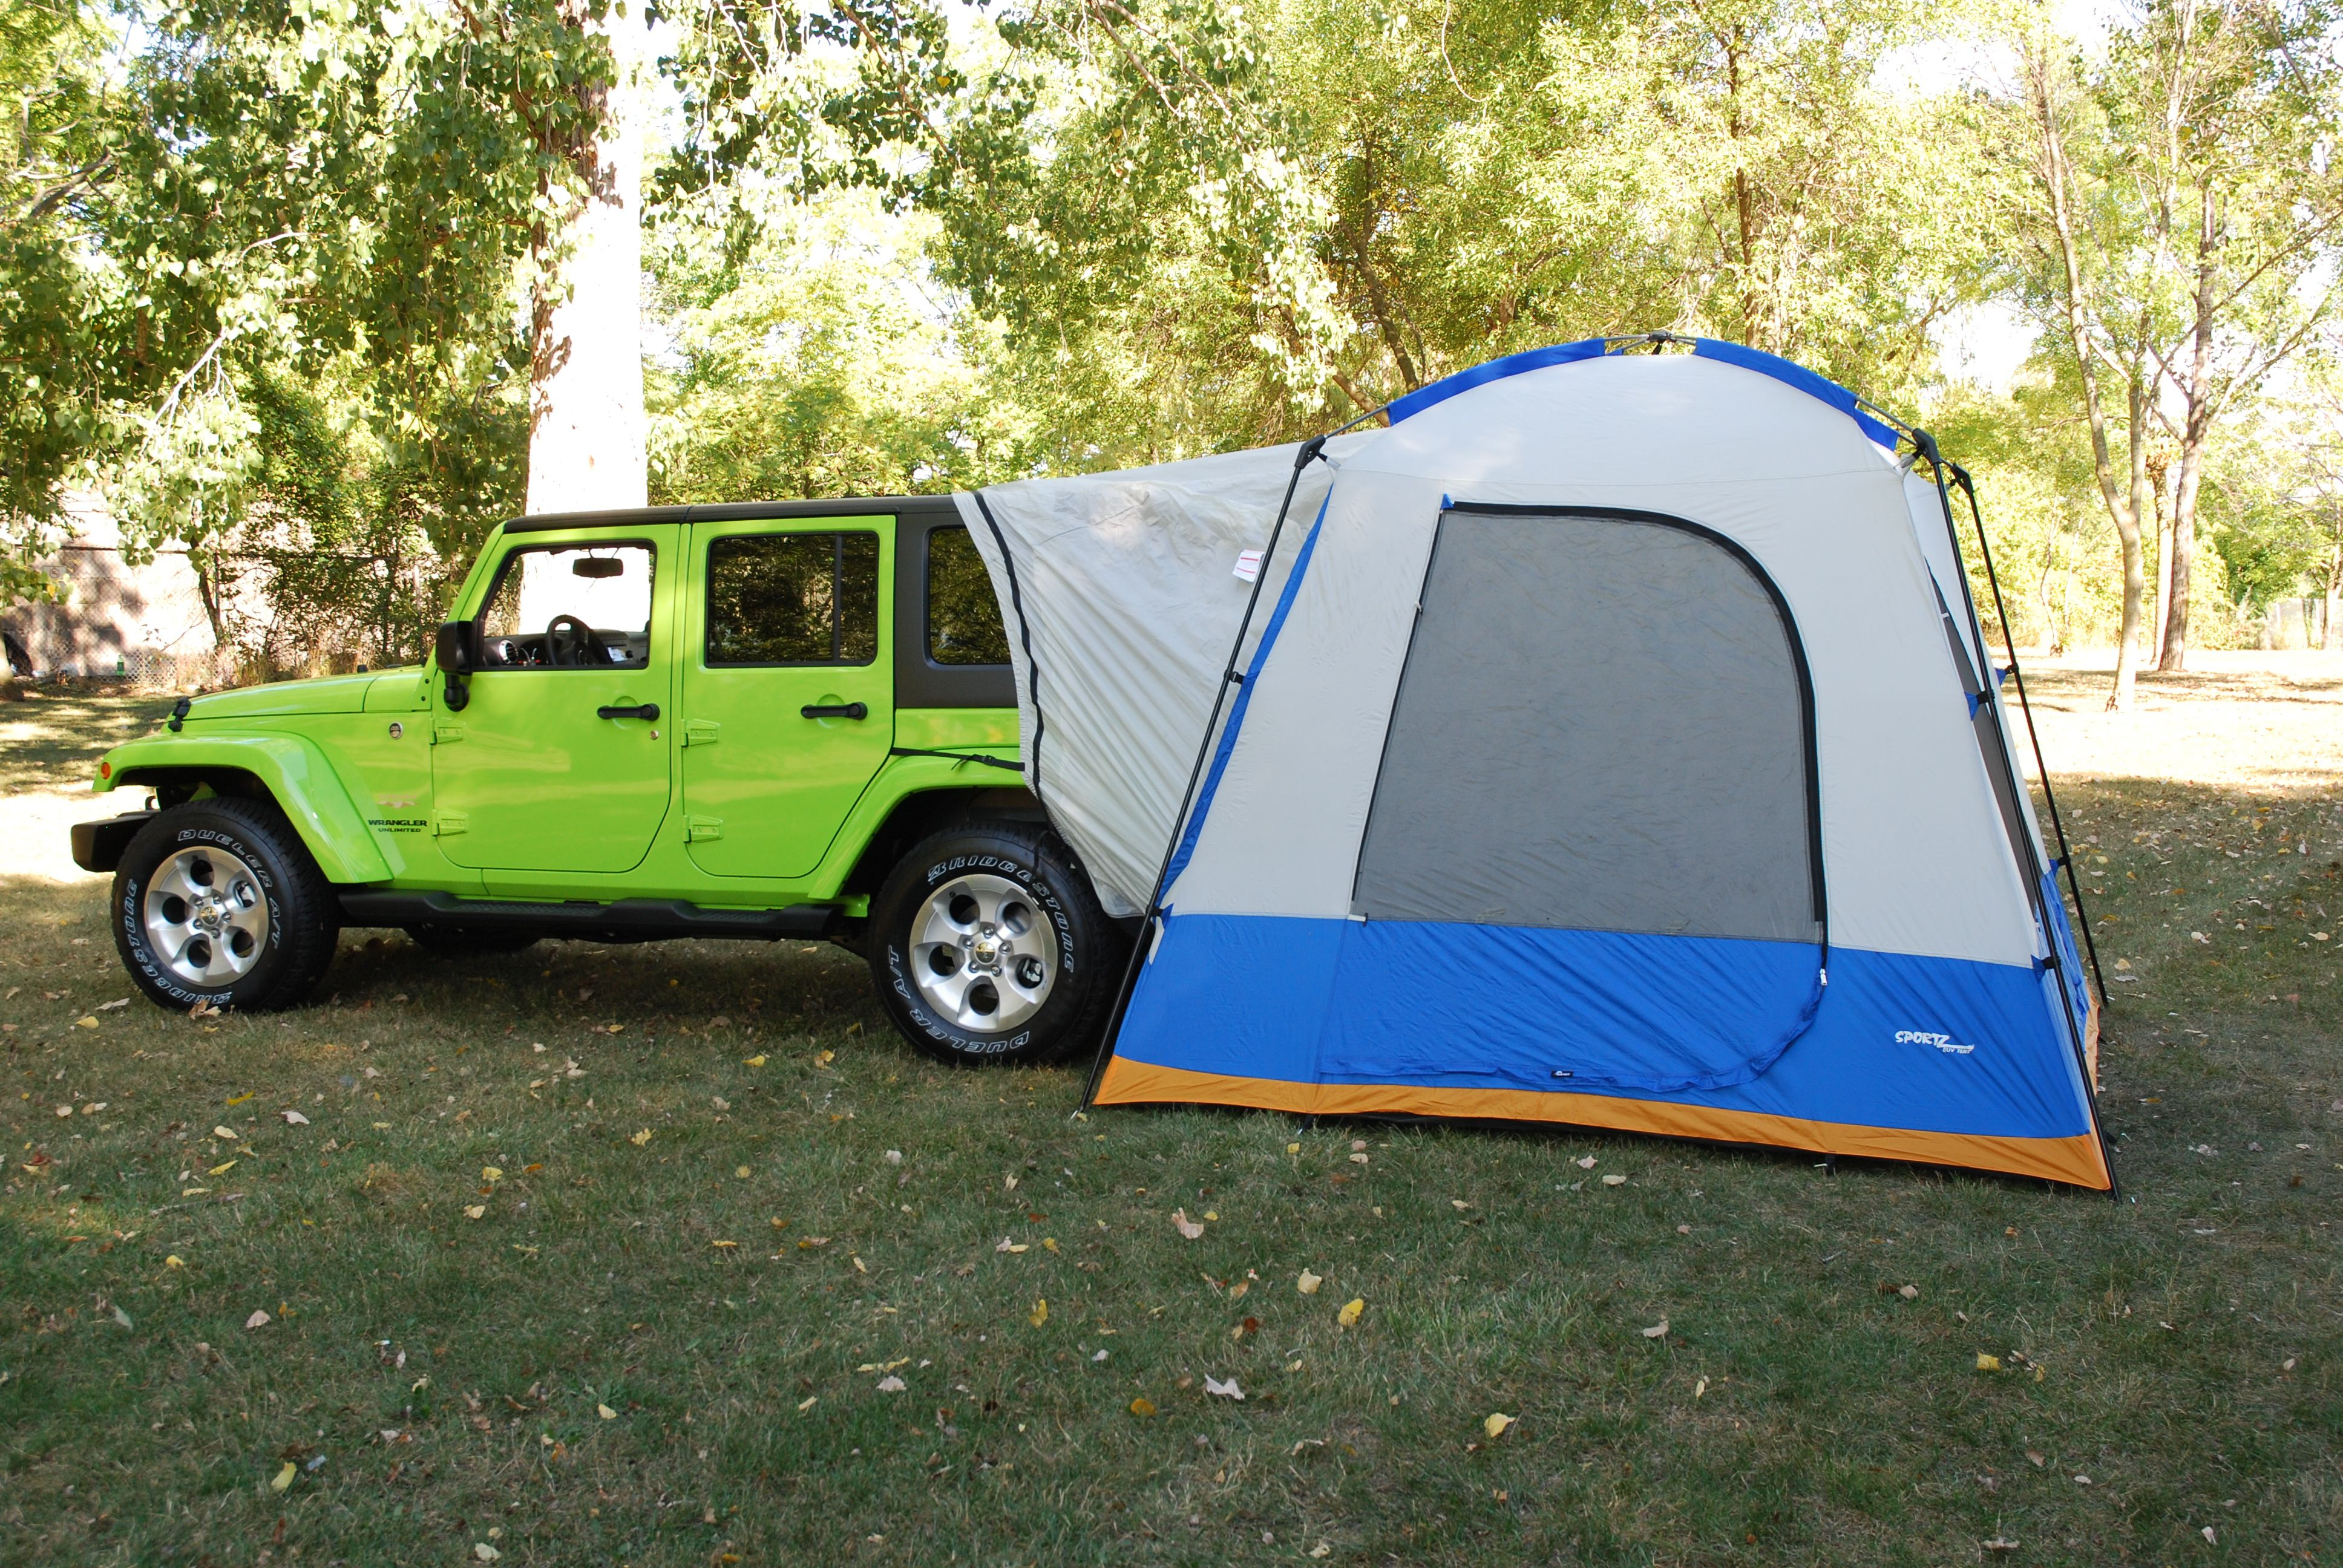 Jeep Wrangler Tent Sleeps 4 6 People Comfortably With Room To Spare